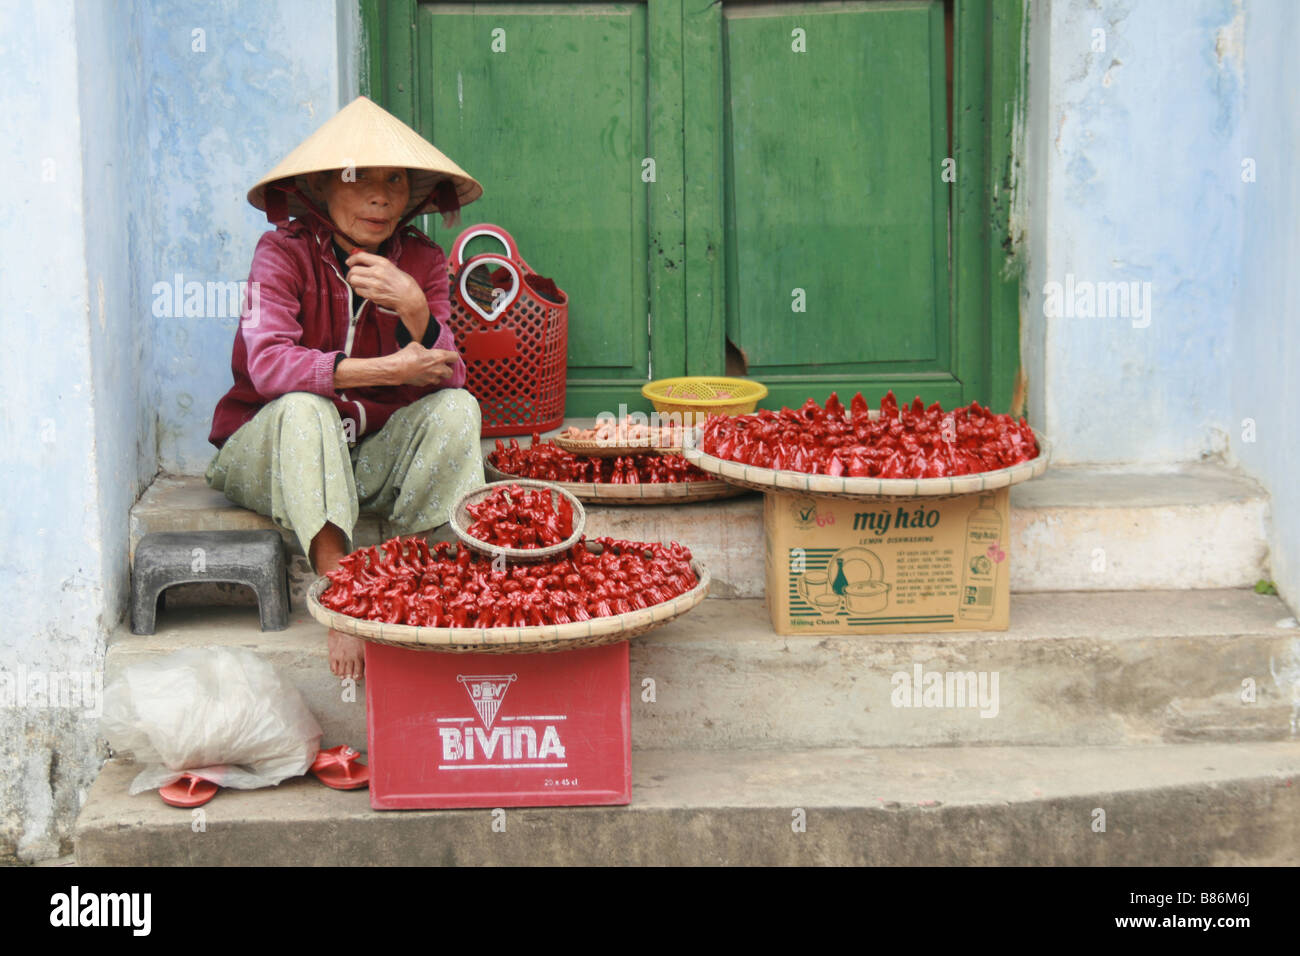 Photograph of a Vietnamese lady selling red whistles on the street in Hoi Ann, Vietnam - Stock Image